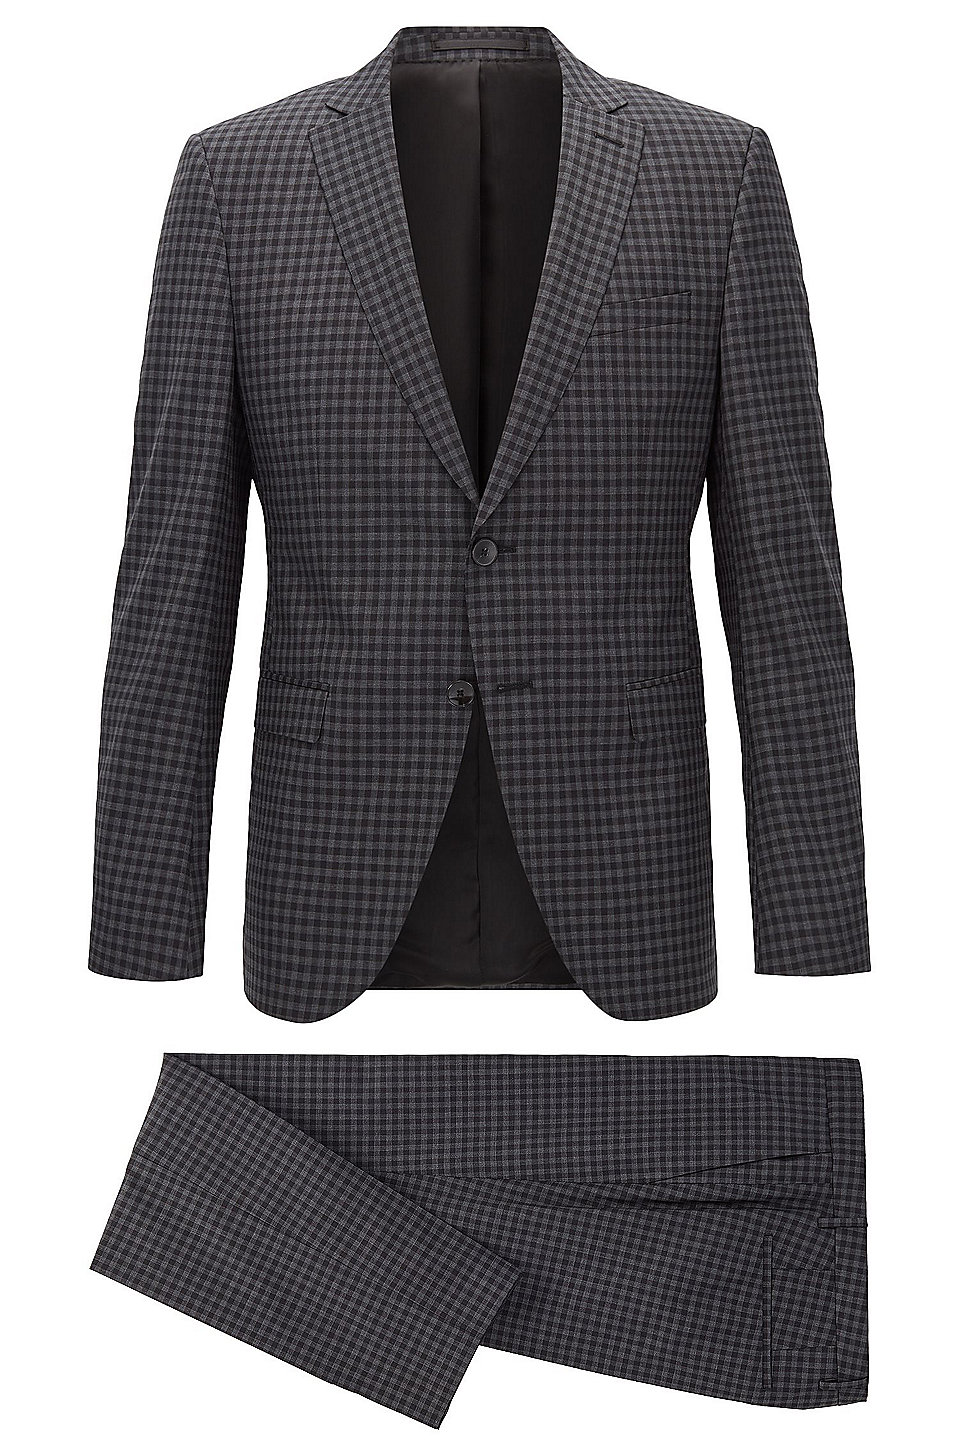 Extra-slim-fit suit in check virgin wool, Patterned